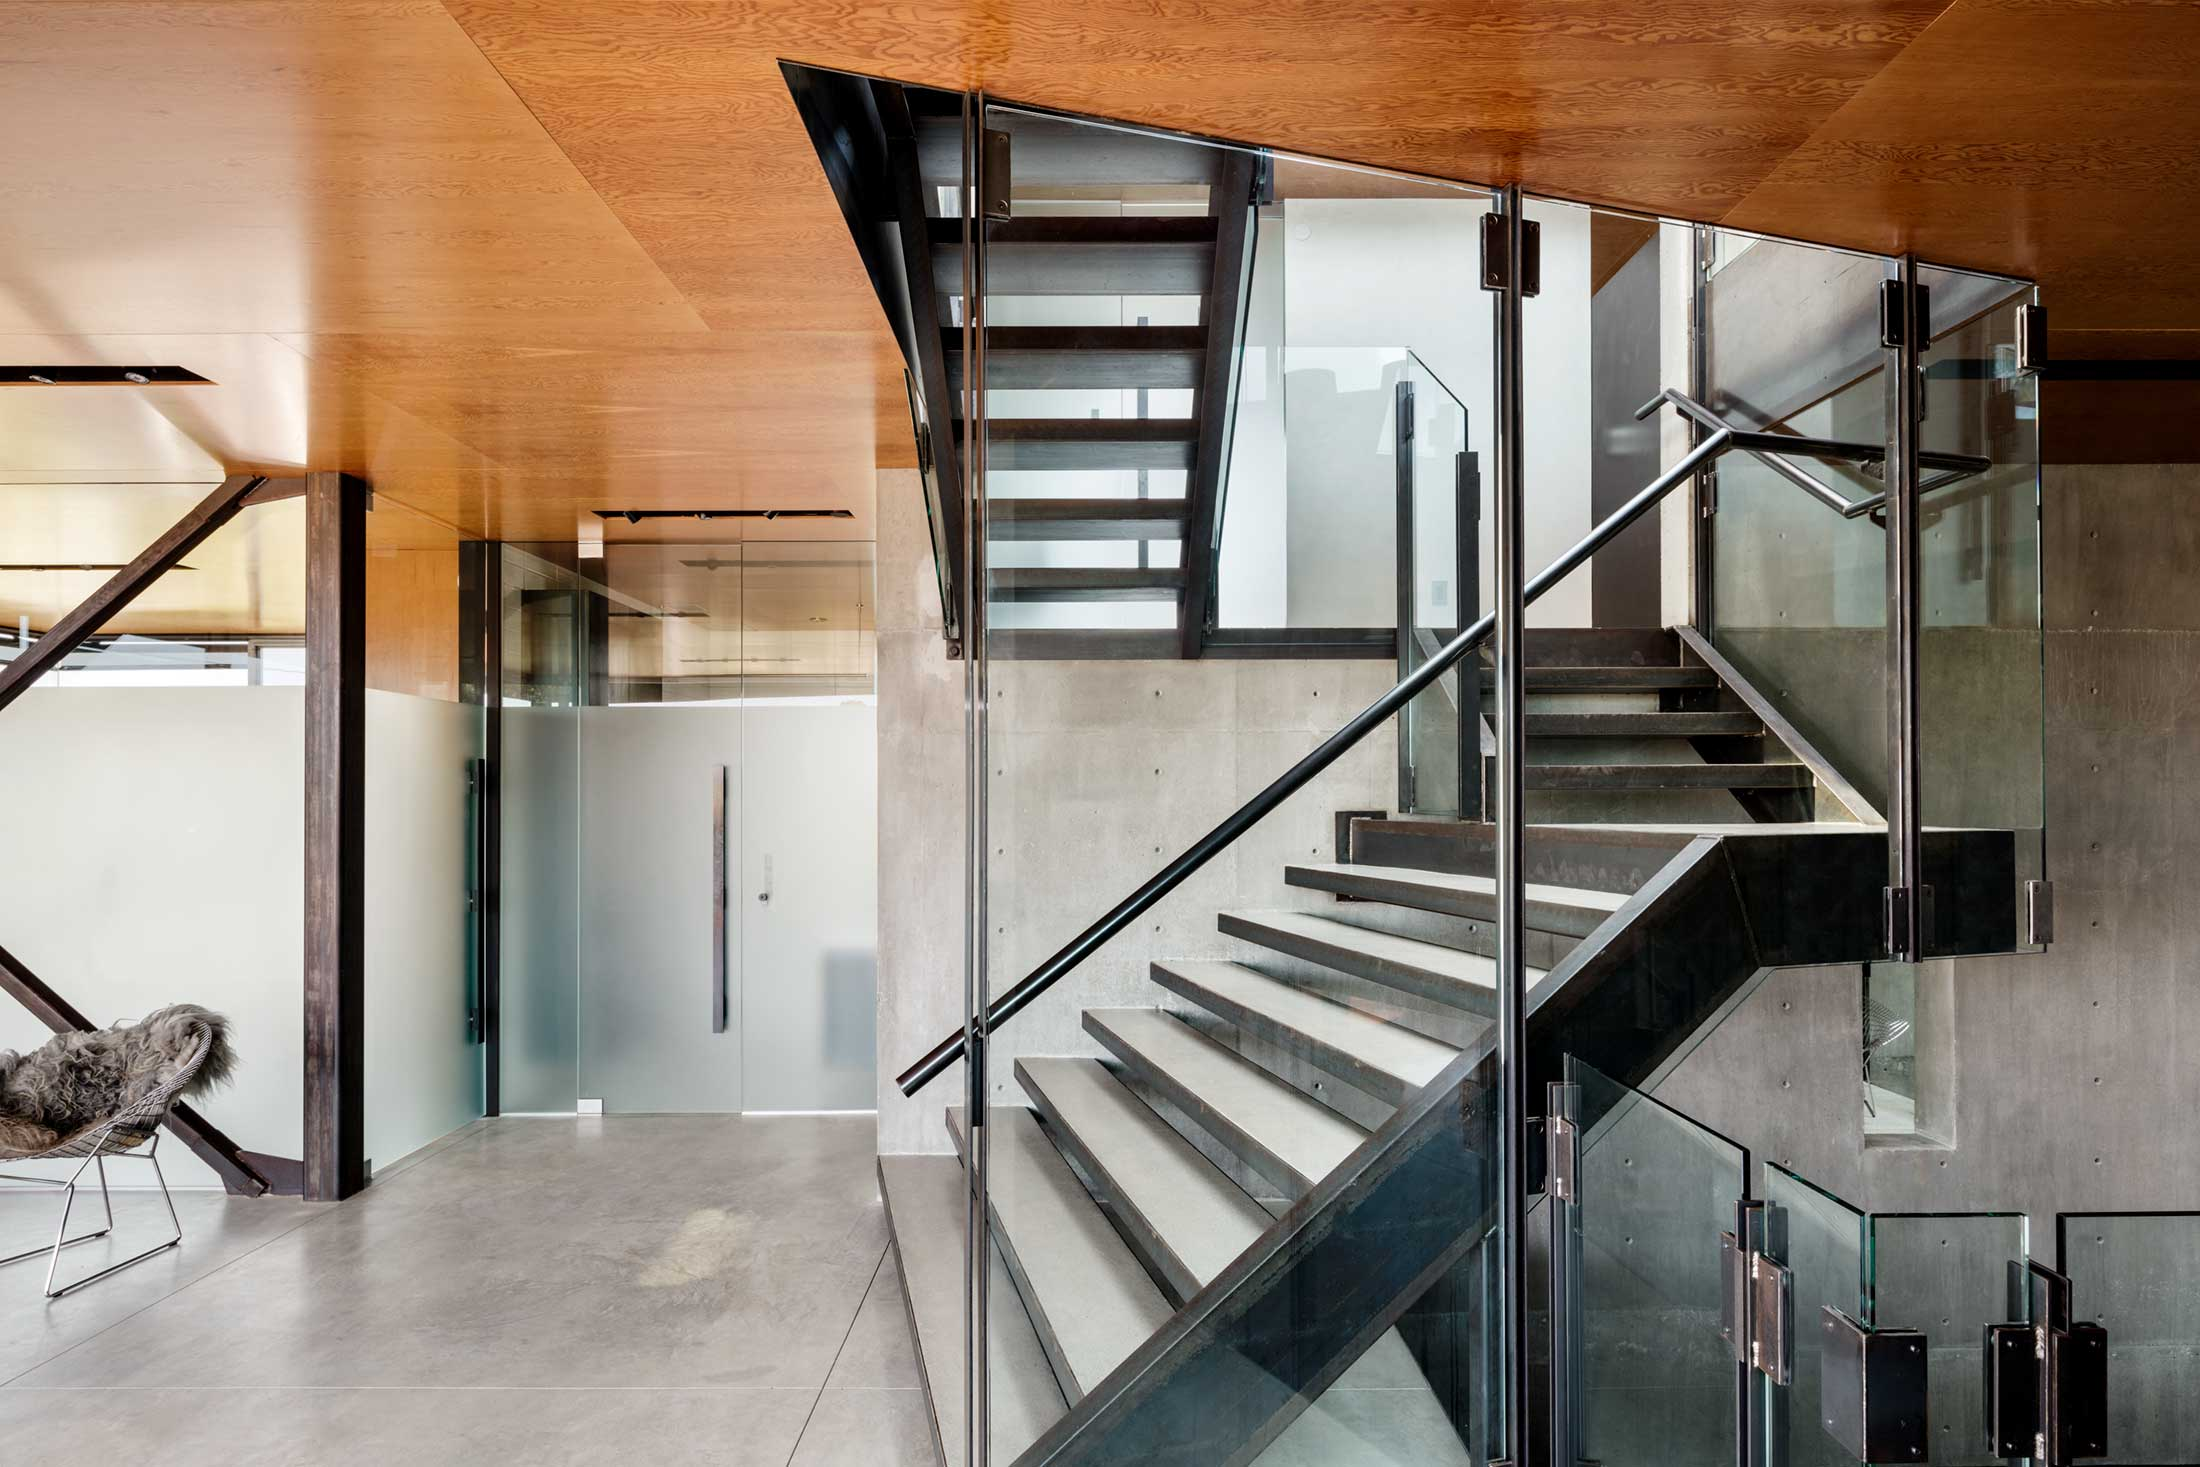 modern-architecture-residential-stairwell-concrete-california-shubindonaldson-skyline-1